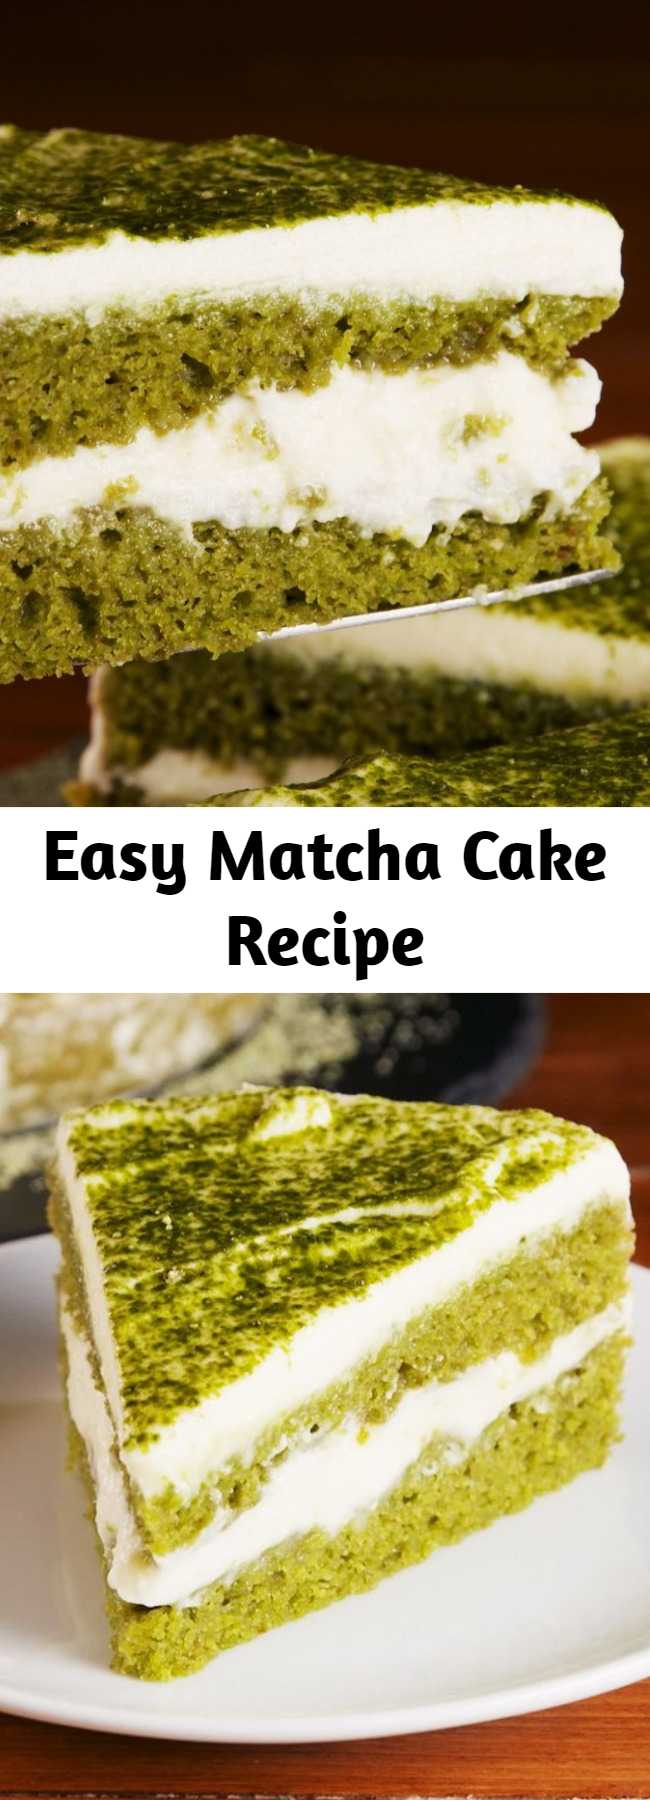 Easy Matcha Cake Recipe - Green Tea Lovers are going to be obsessed with how light this matcha cake and its accompanying frosting are. Here are our best tips when making this easy recipe!